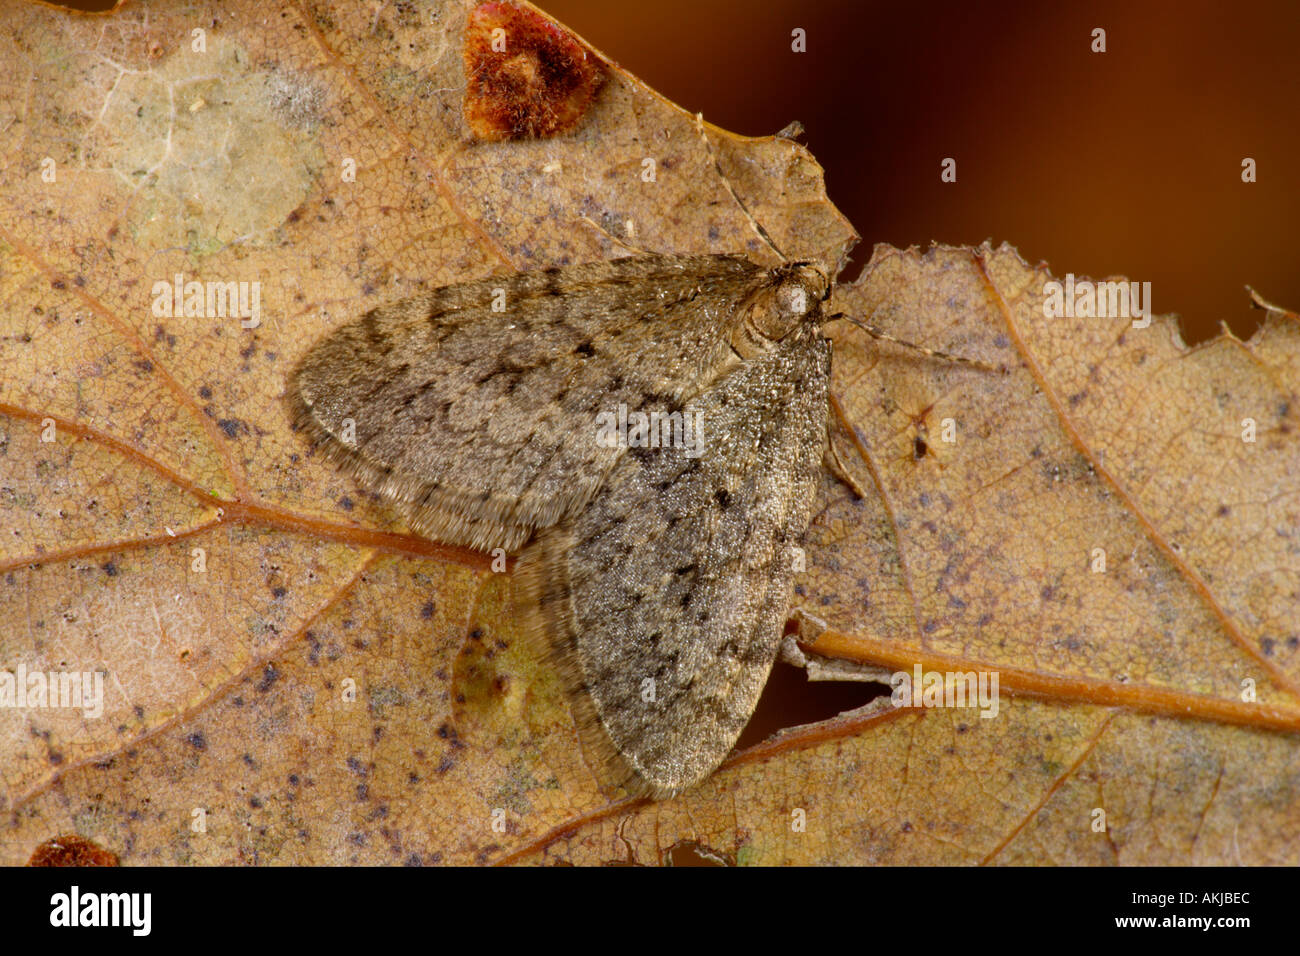 Winter Moth (Operophtera brumata) at rest on autumnal leaf potton bedfordshire - Stock Image